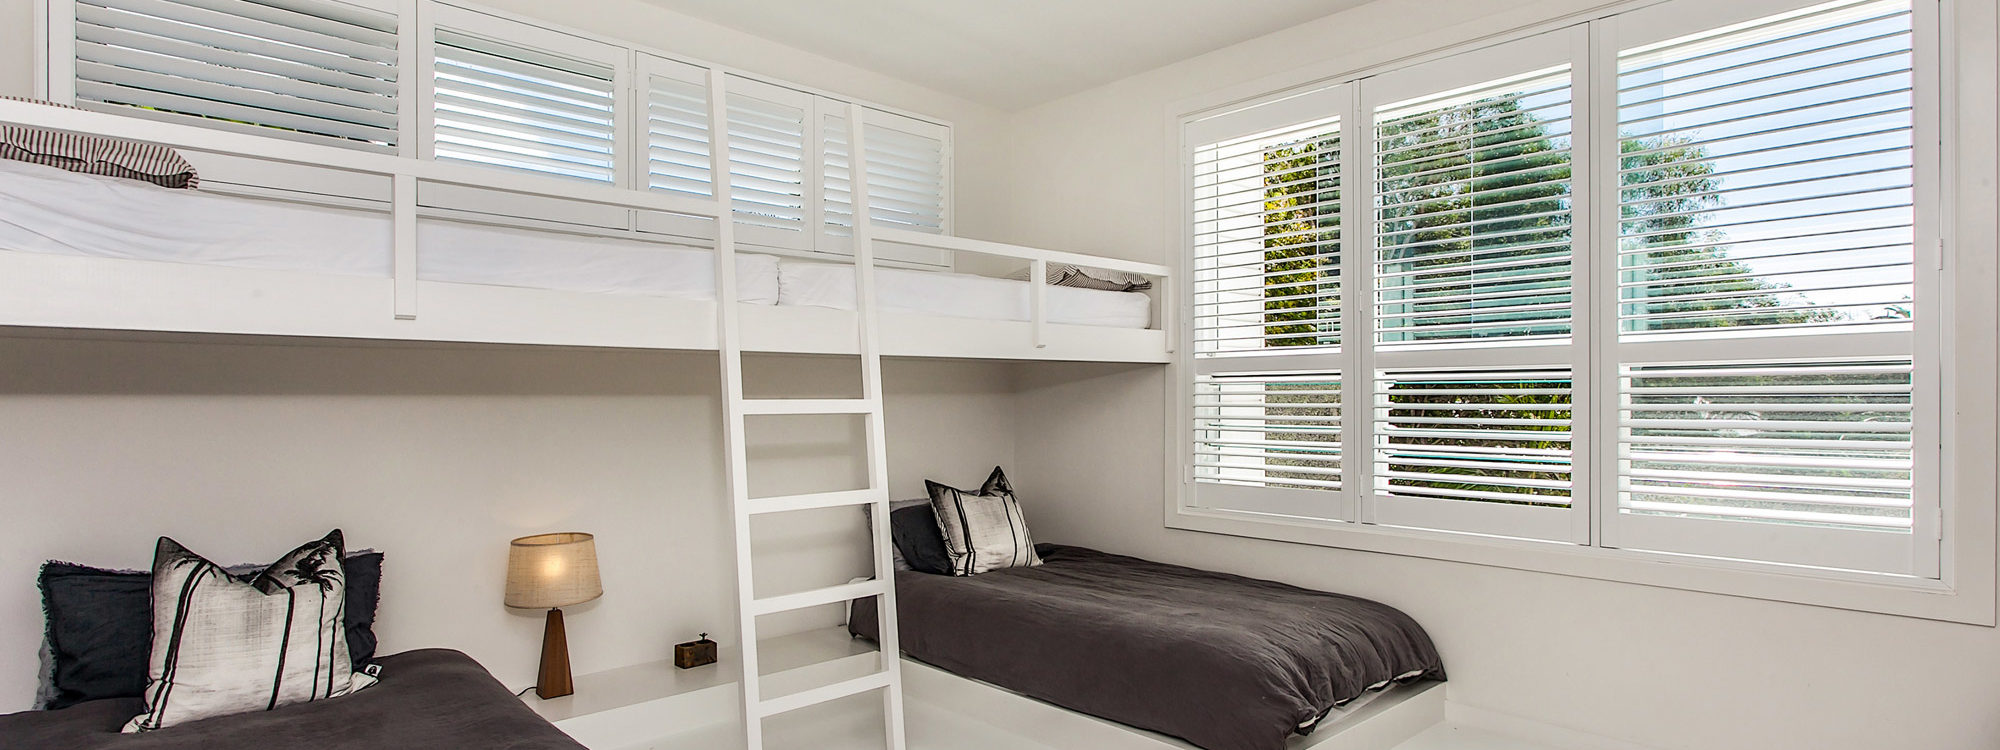 A Summer Resort - Twin Bedroom & Bunk Beds